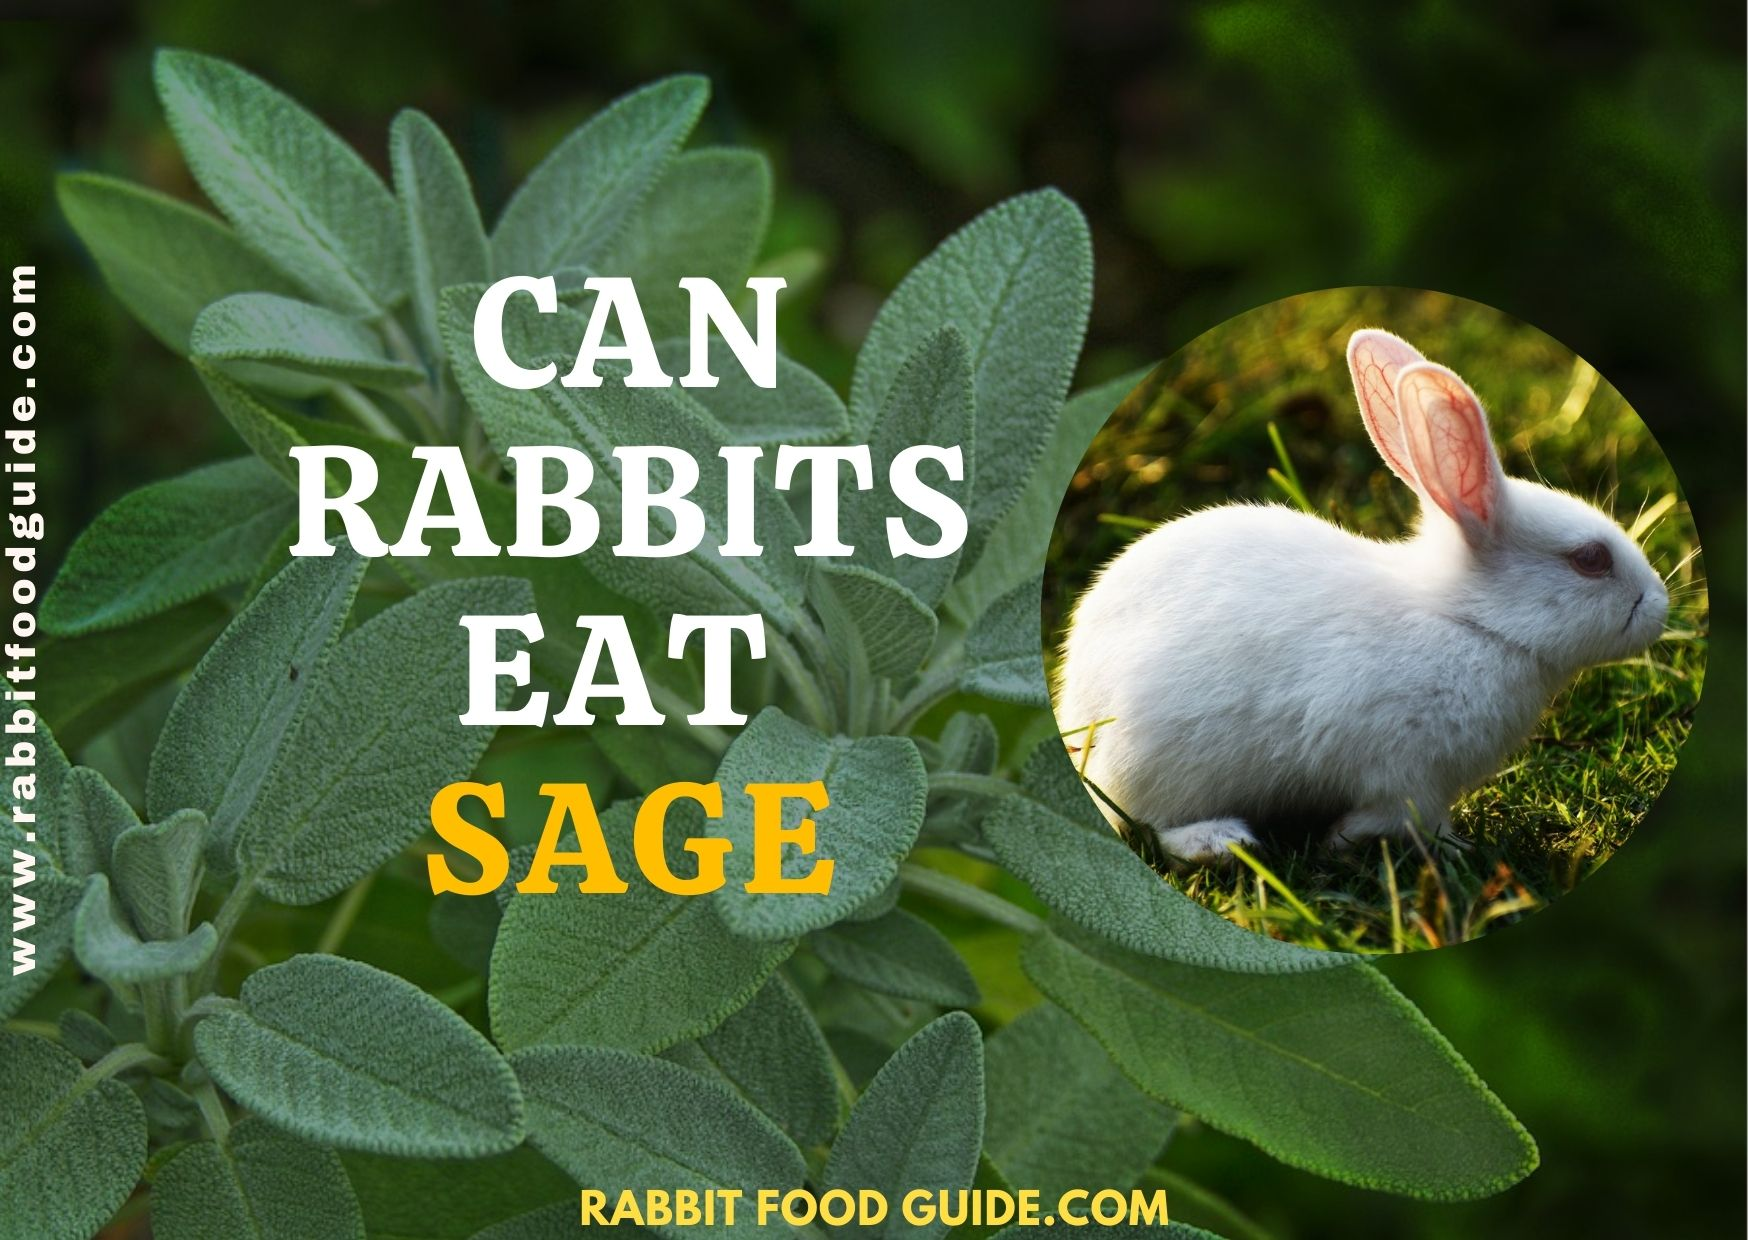 Can Rabbits Eat Sage Proper Guide & Things We Should Know